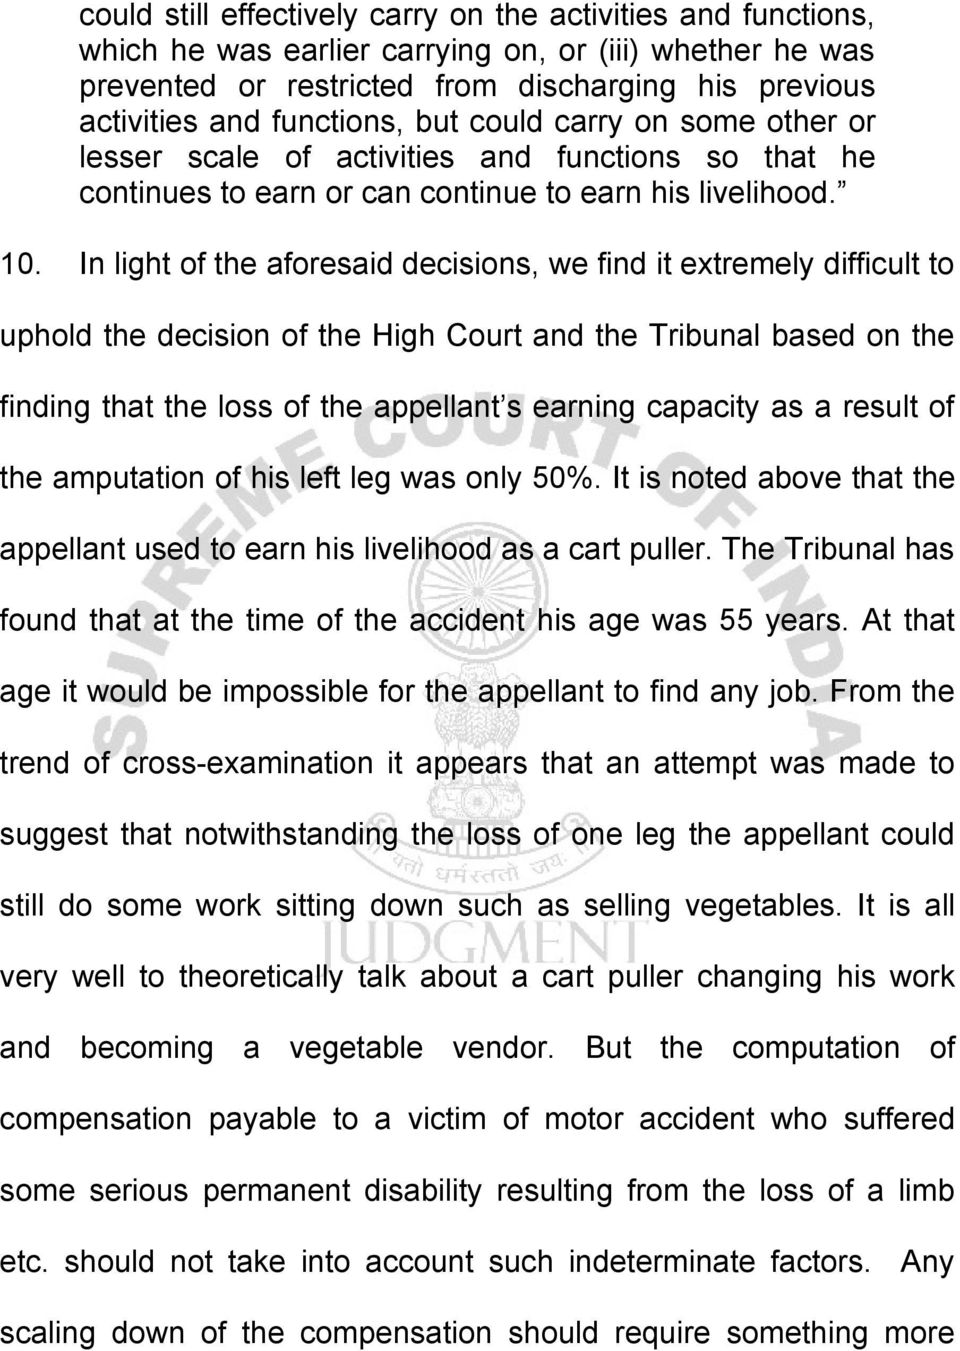 In light of the aforesaid decisions, we find it extremely difficult to uphold the decision of the High Court and the Tribunal based on the finding that the loss of the appellant s earning capacity as